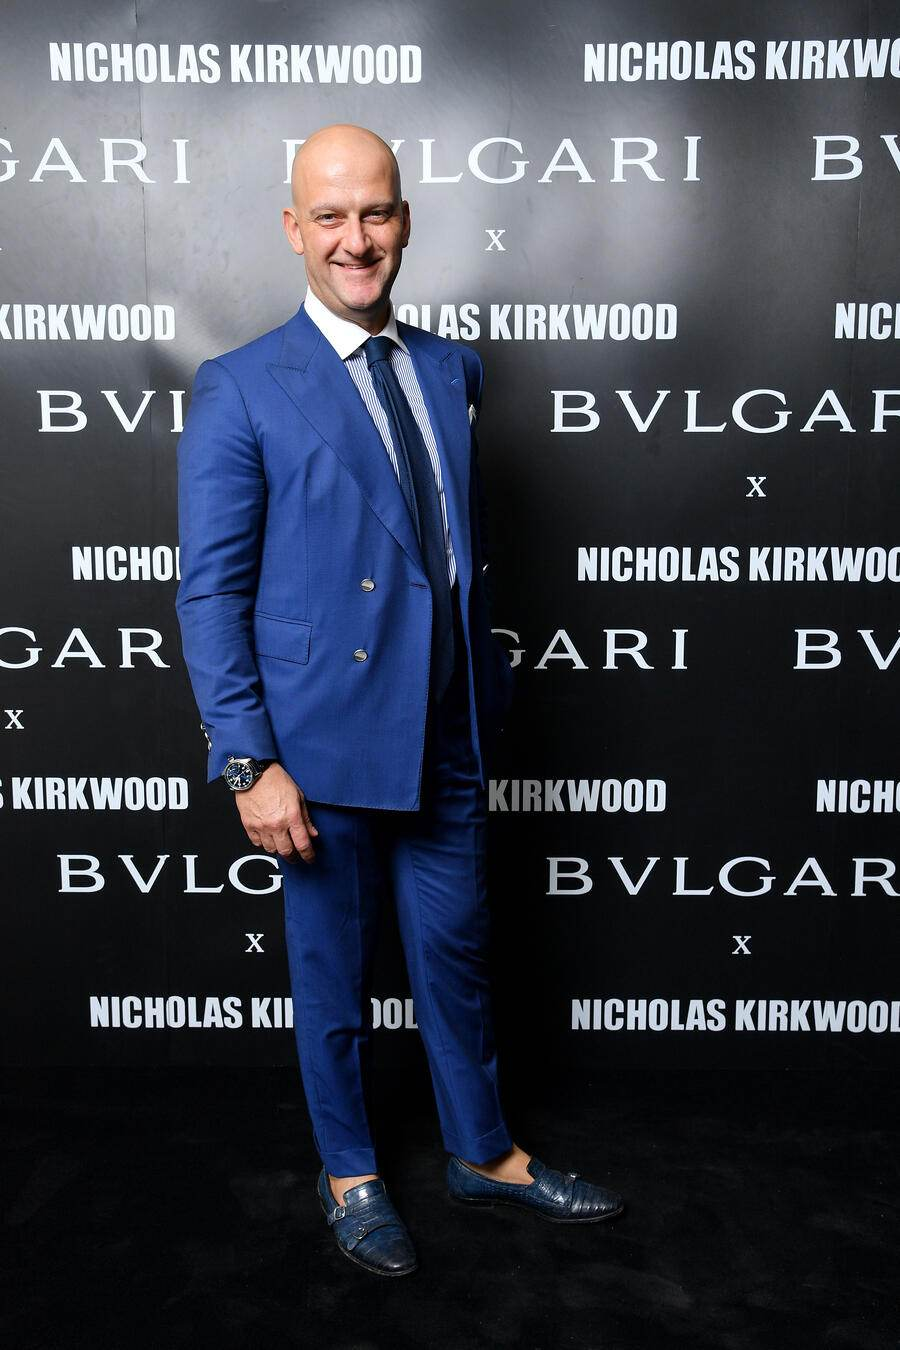 MILAN, ITALY - SEPTEMBER 20: Giuseppe Santoni attends a party celebrating 'Serpenti Forever' By Nicholas Kirkwood for Bvlgari on September 20, 2017 in Milan, Italy.  (Photo by Venturelli/Getty Images for Bvlgari)